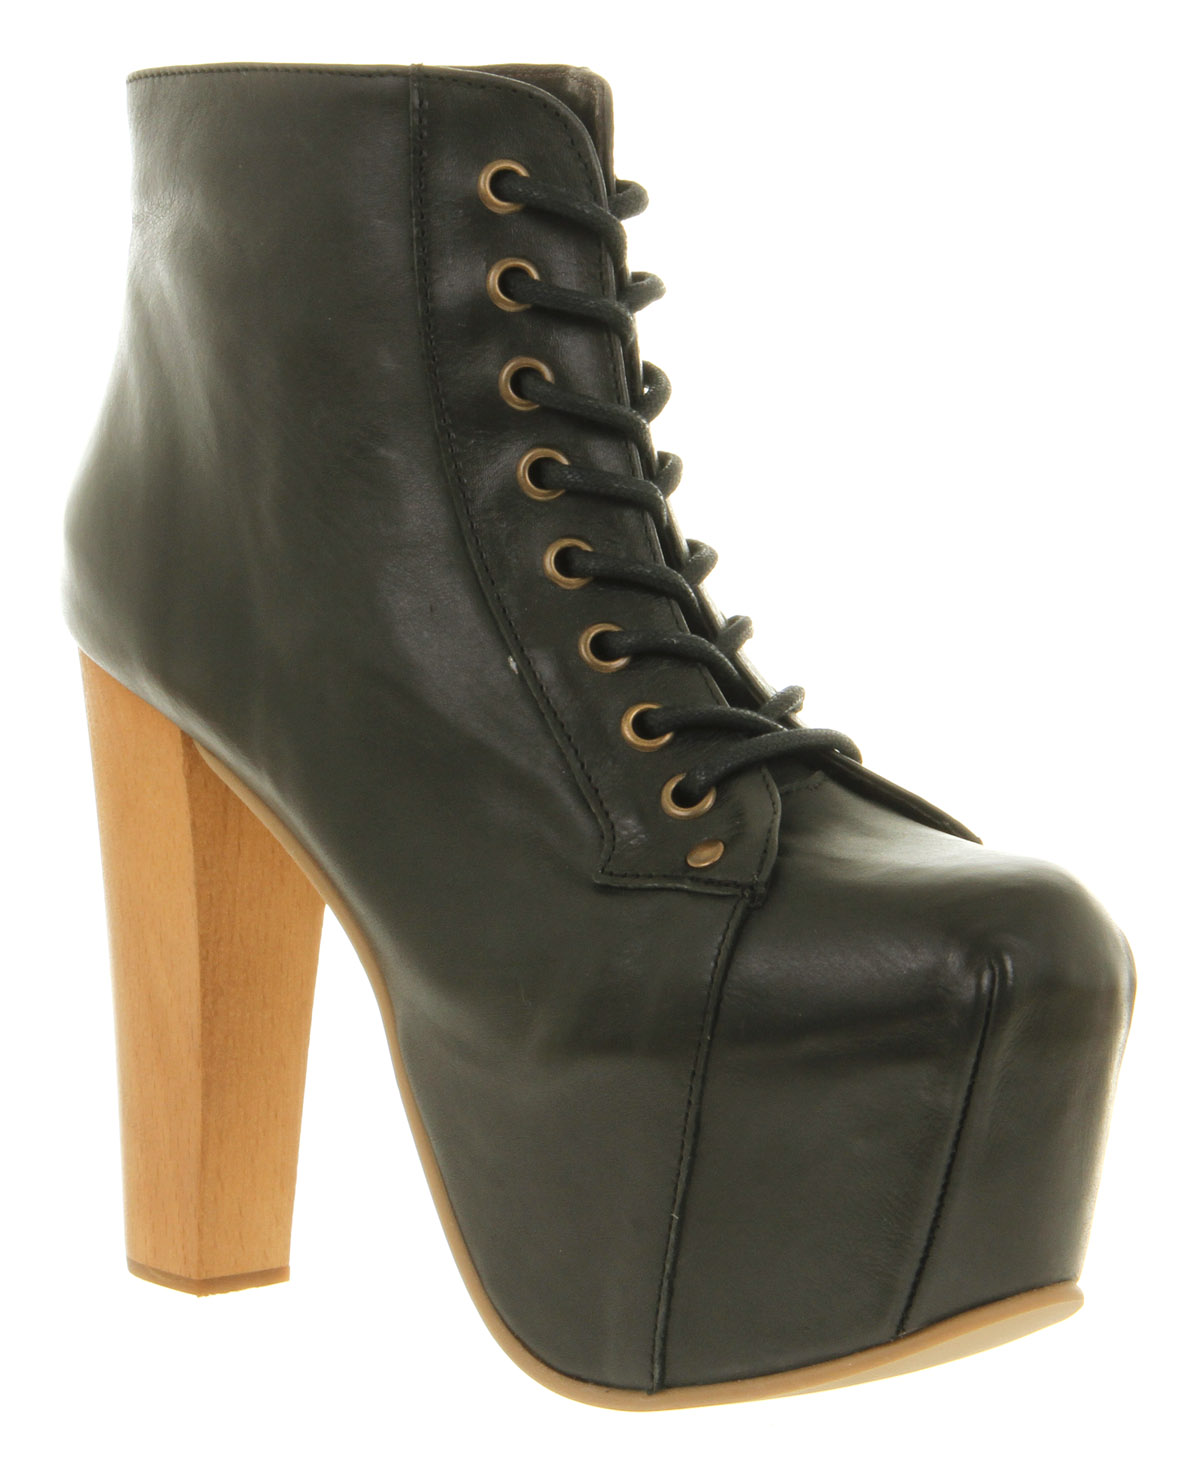 Womens jeffrey campbell lita platform ankle boot black leather boots - Jeffrey campbell lita platform boots ...